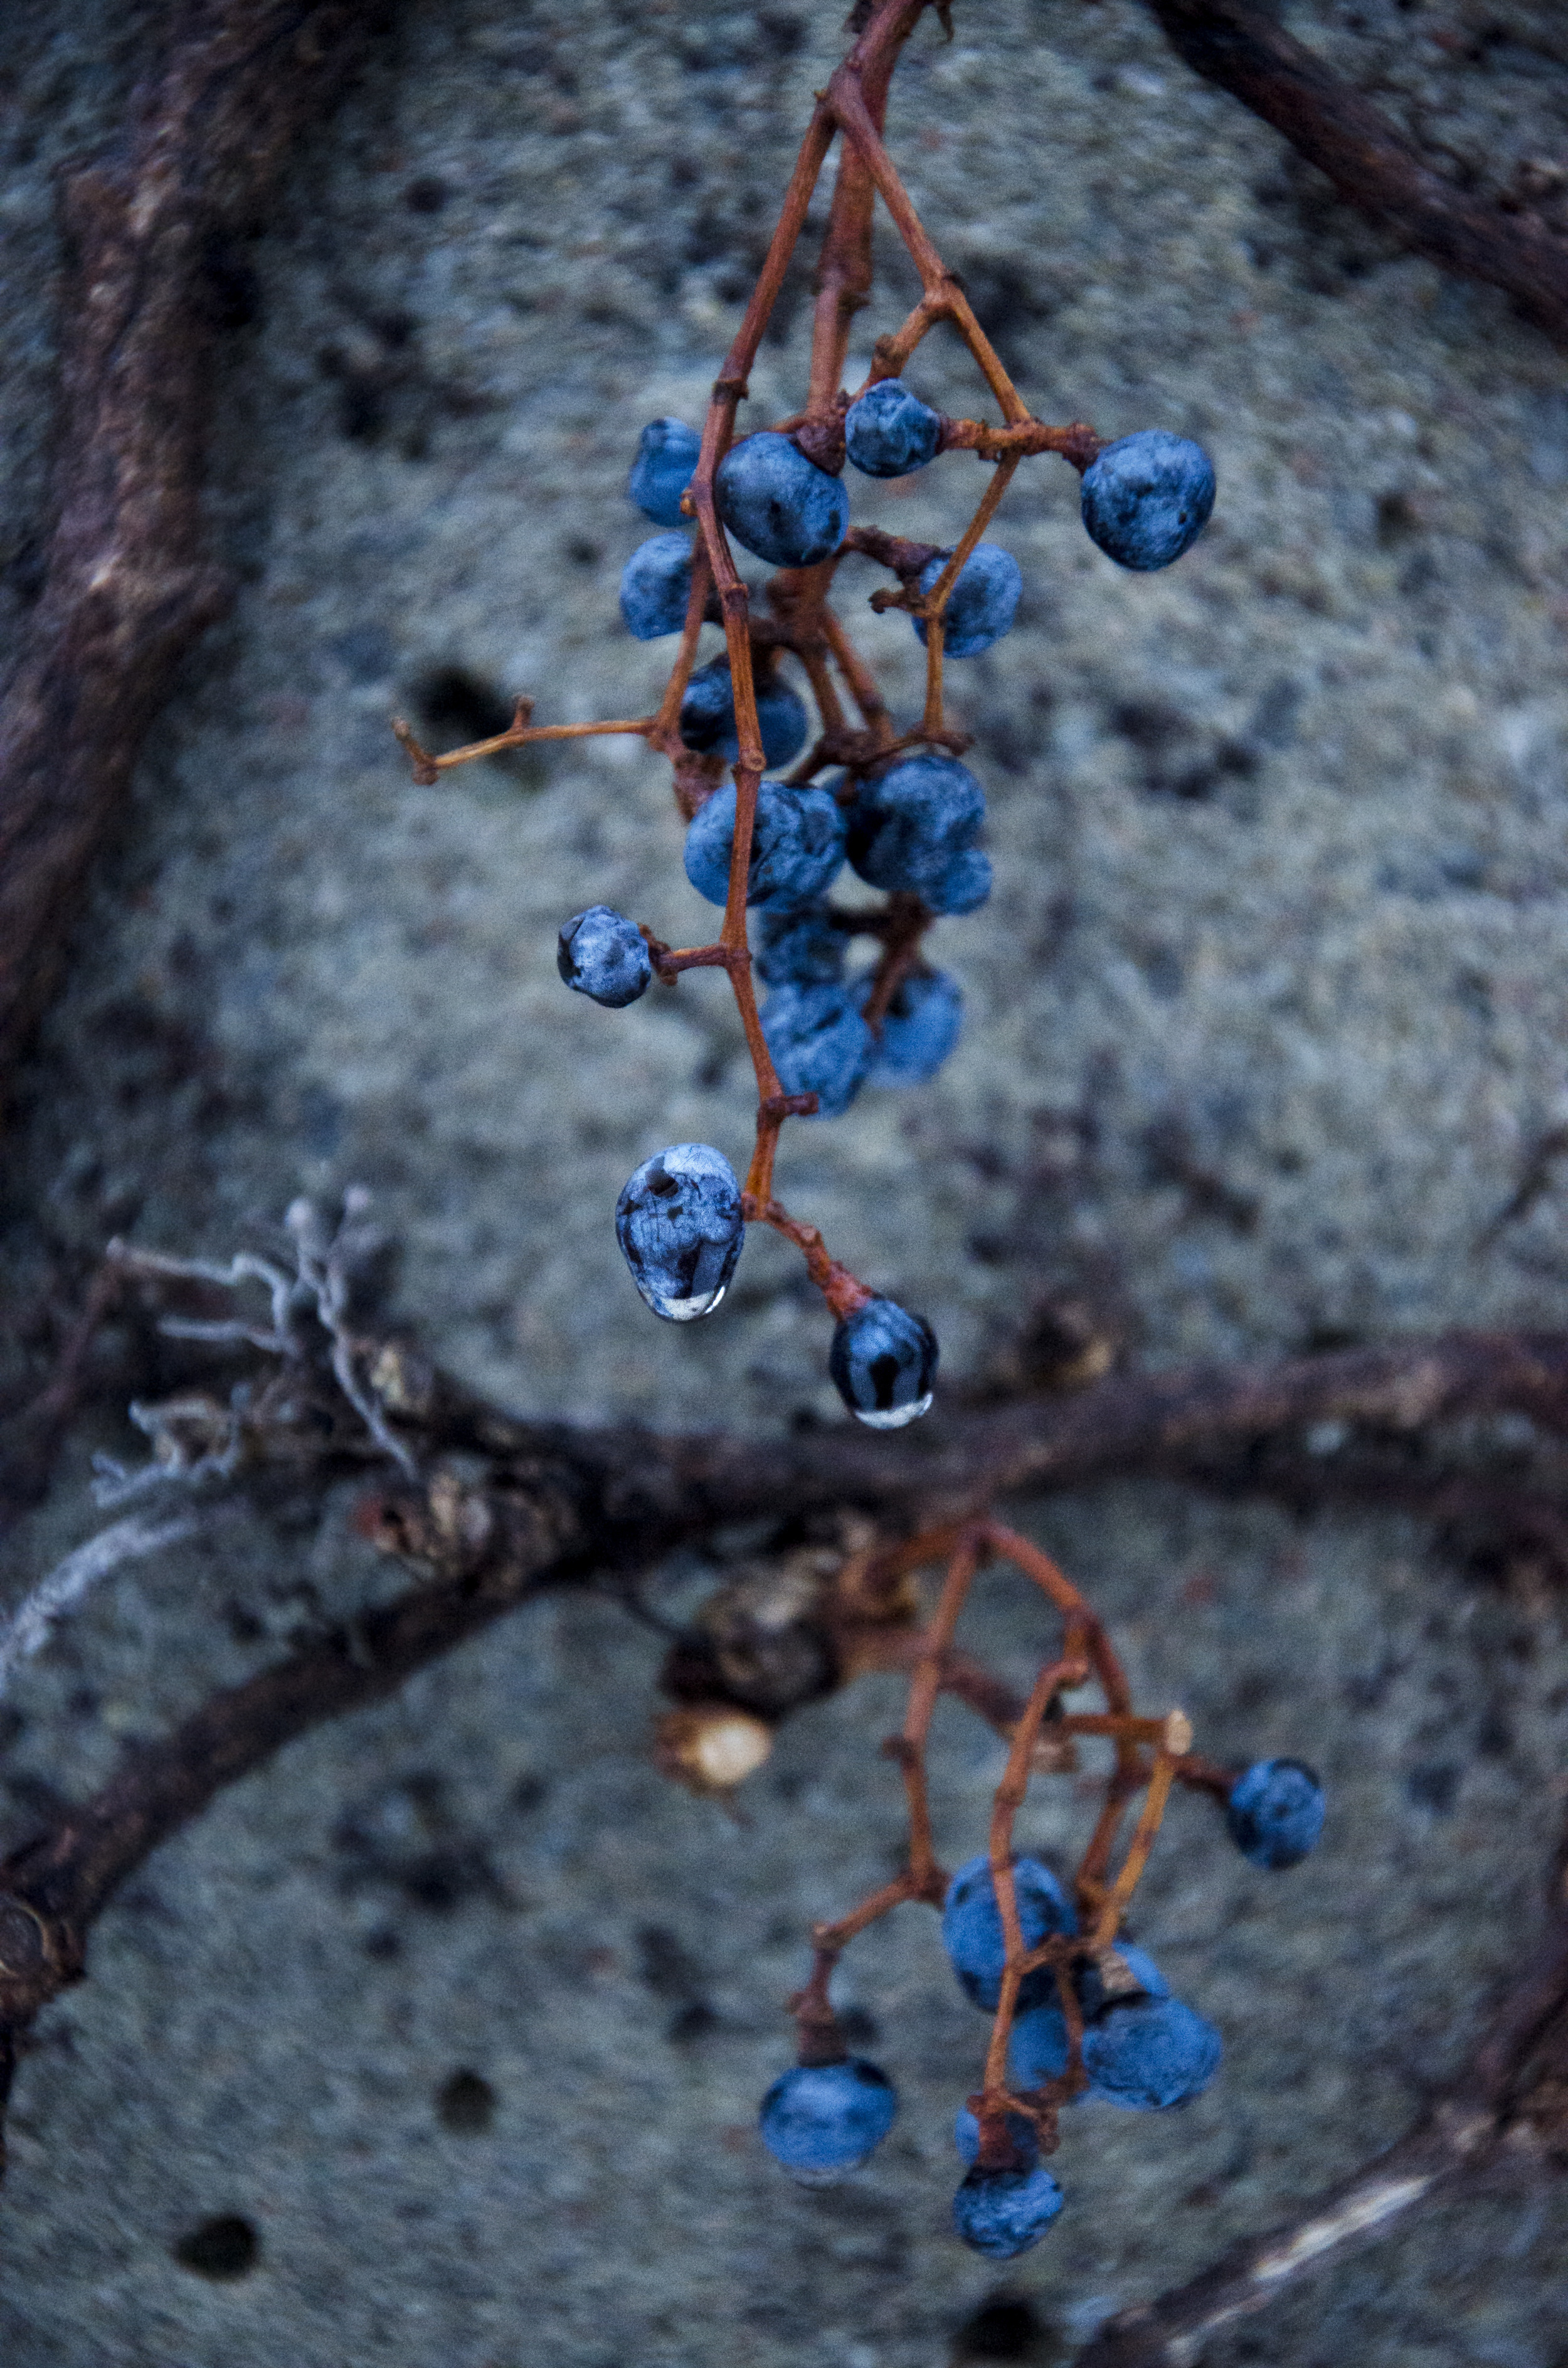 Jenkins, Cheyenne. Grapes . 2013. Digital Photography. Montreal, Quebec